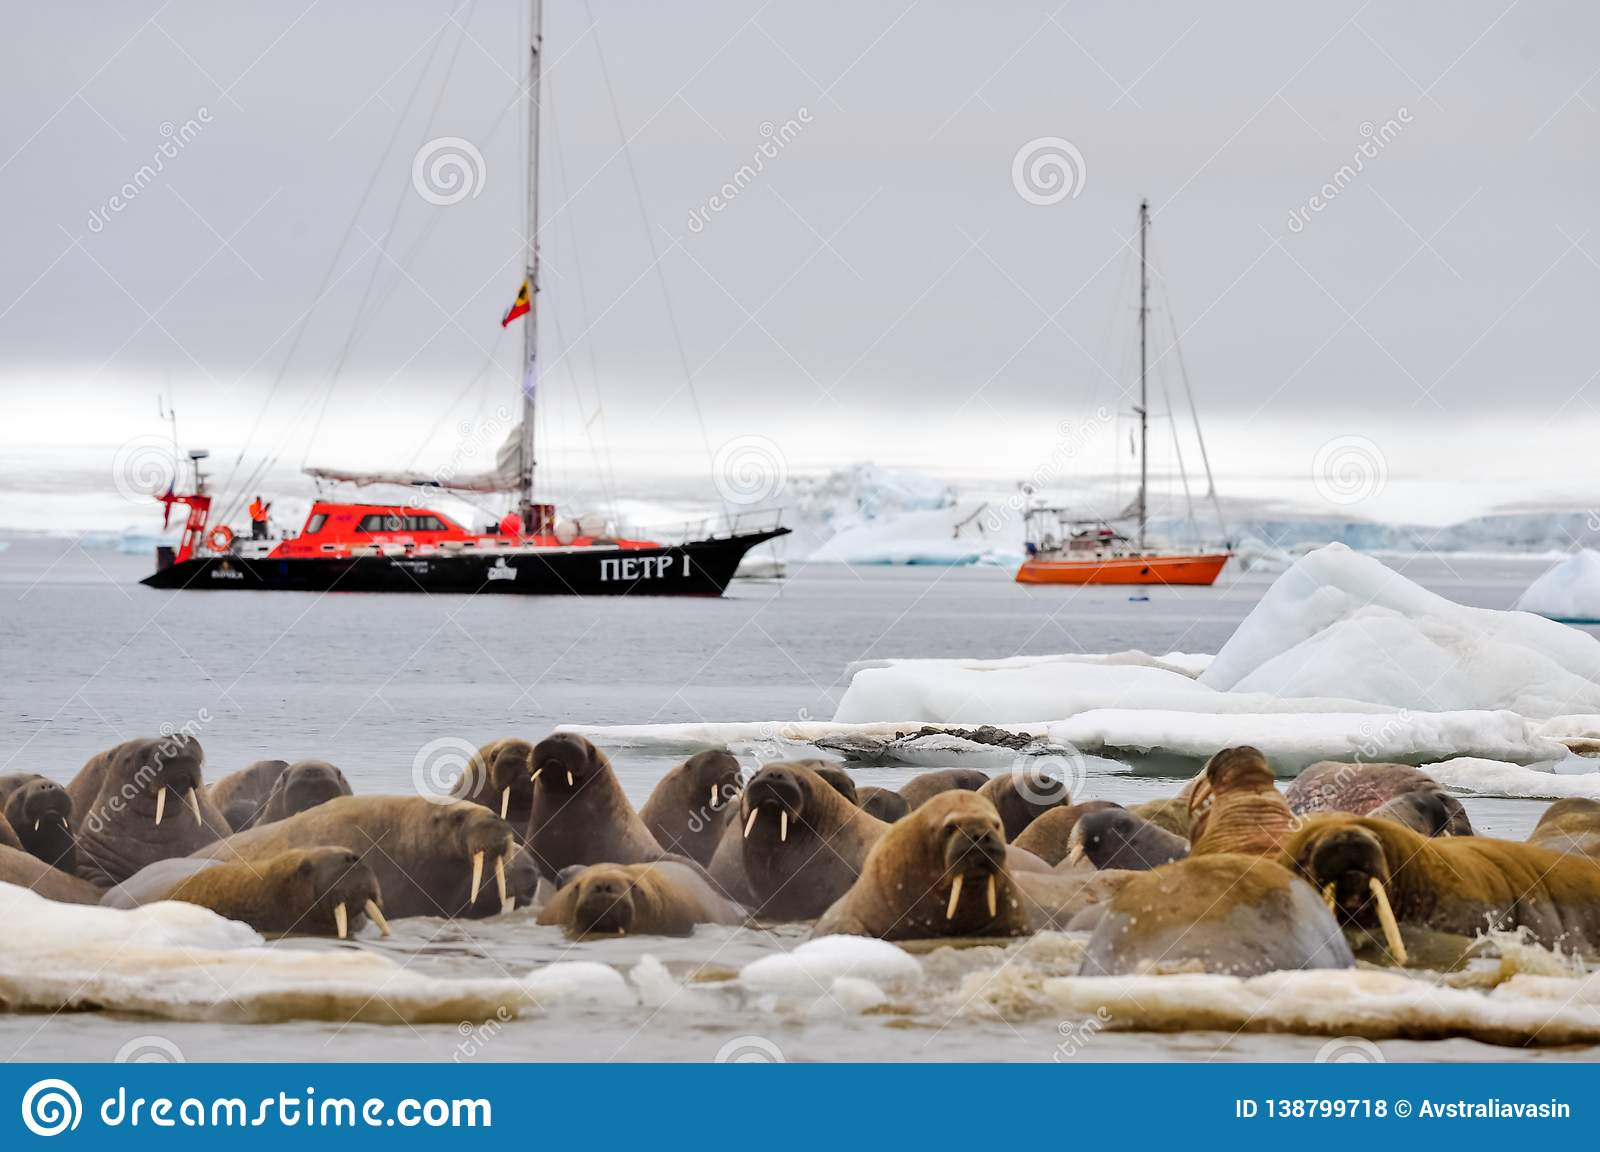 Walrus on an ice floe. Vessel of the Arctic expedition in the waters of the Arctic Ocean